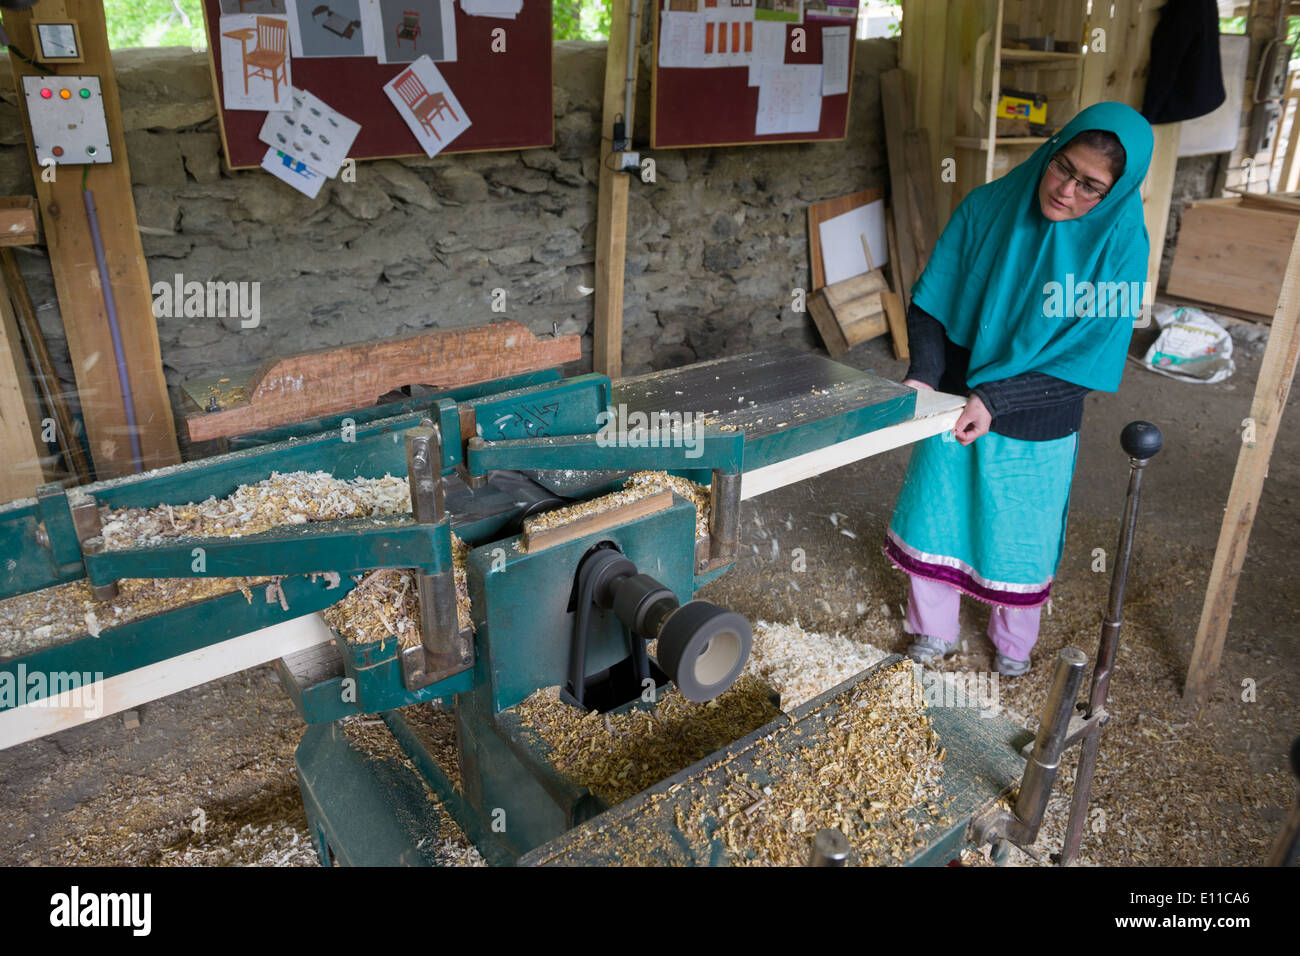 Woman using a power tool at a charity teaching Pakistani women carpentry, Altit Village, near Karimabad, Hunza Valley, Gilgit-Baltistan, Pakistan - Stock Image